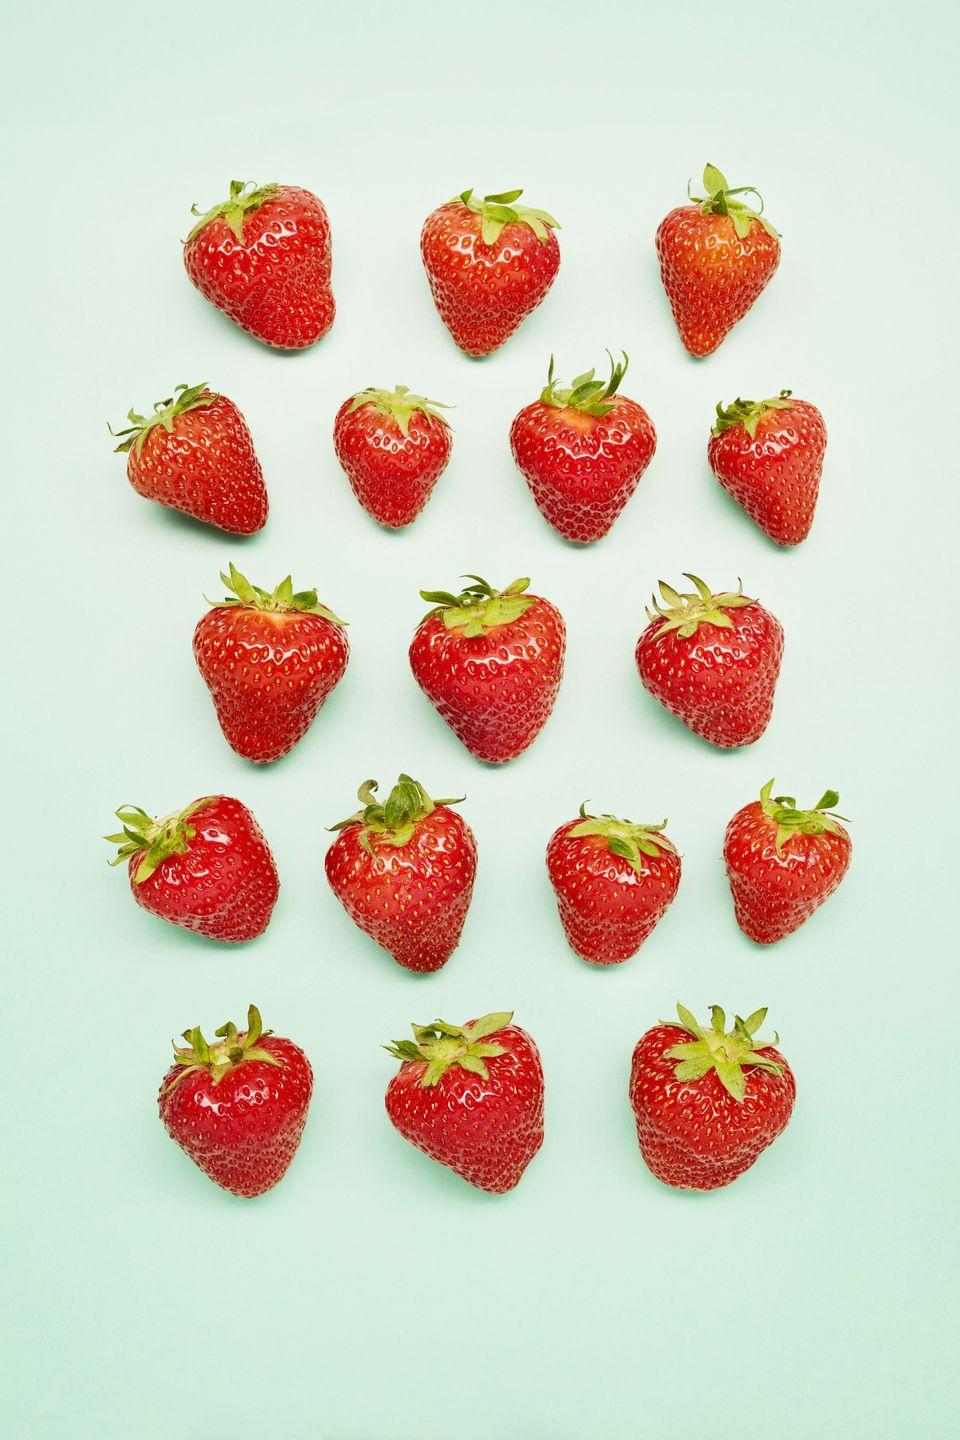 "<p>Polyphenols, which are plant-based compounds that naturally help to regulate your cardiovascular system, are found in high amounts in strawberries. <a href=""https://www.sciencedirect.com/science/article/abs/pii/S0955286313002490?via%3Dihub"" rel=""nofollow noopener"" target=""_blank"" data-ylk=""slk:Research has linked strawberries"" class=""link rapid-noclick-resp"">Research has linked strawberries</a> to a lower risk of heart disease due to their high polyphenol counts.</p><p><strong>RELATED:</strong> <a href=""https://www.goodhousekeeping.com/food-recipes/dessert/g4299/strawberry-desserts/"" rel=""nofollow noopener"" target=""_blank"" data-ylk=""slk:20 Lightened Strawberry Desserts for Summer"" class=""link rapid-noclick-resp"">20 Lightened Strawberry Desserts for Summer</a></p>"